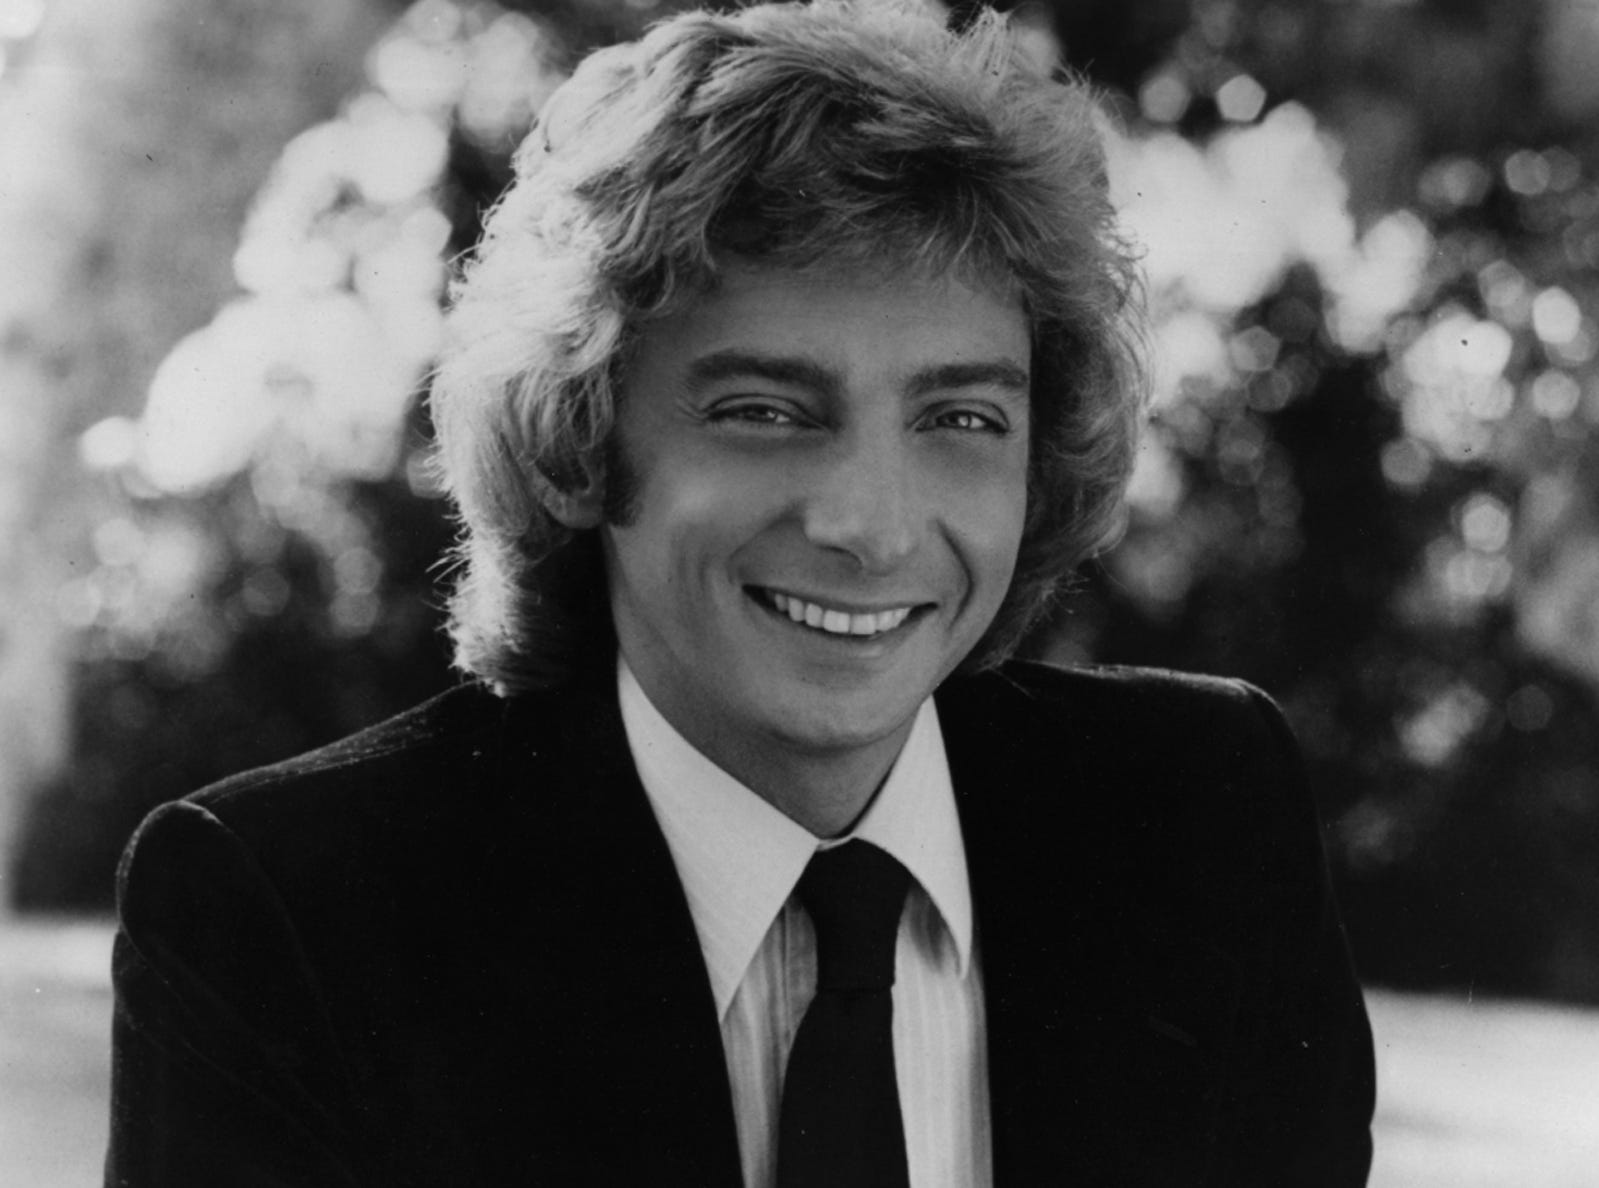 Barry Manilow is seen in a promotional photo circa 1979.